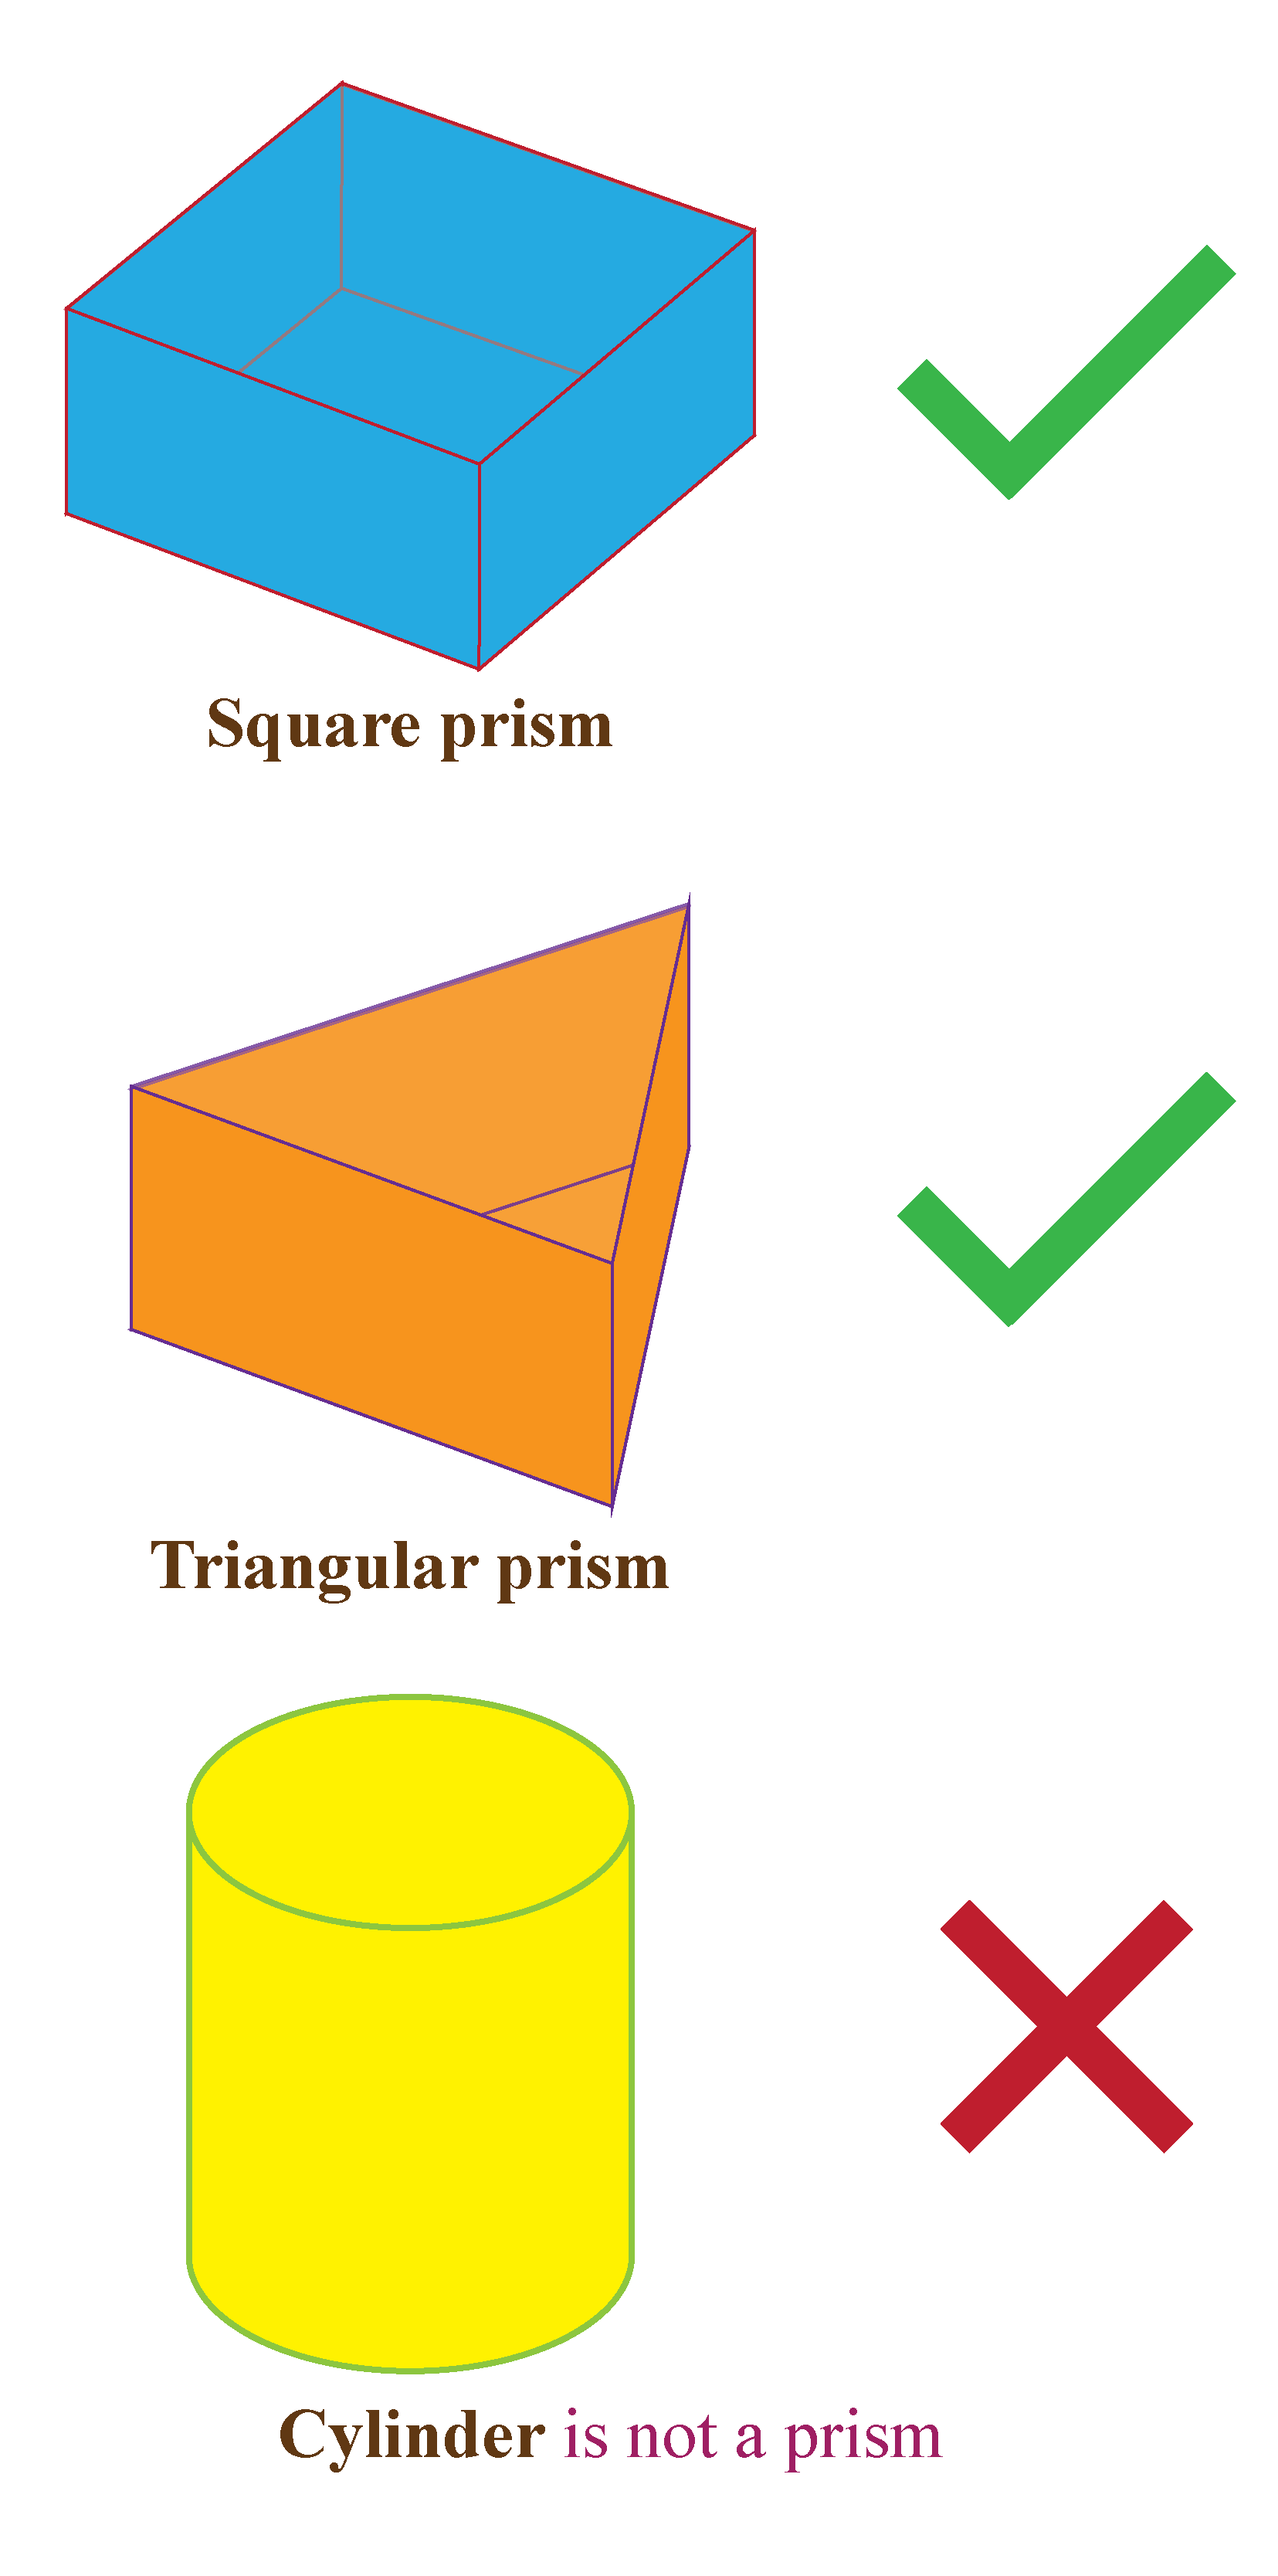 Cylinder-is-not-a-prism